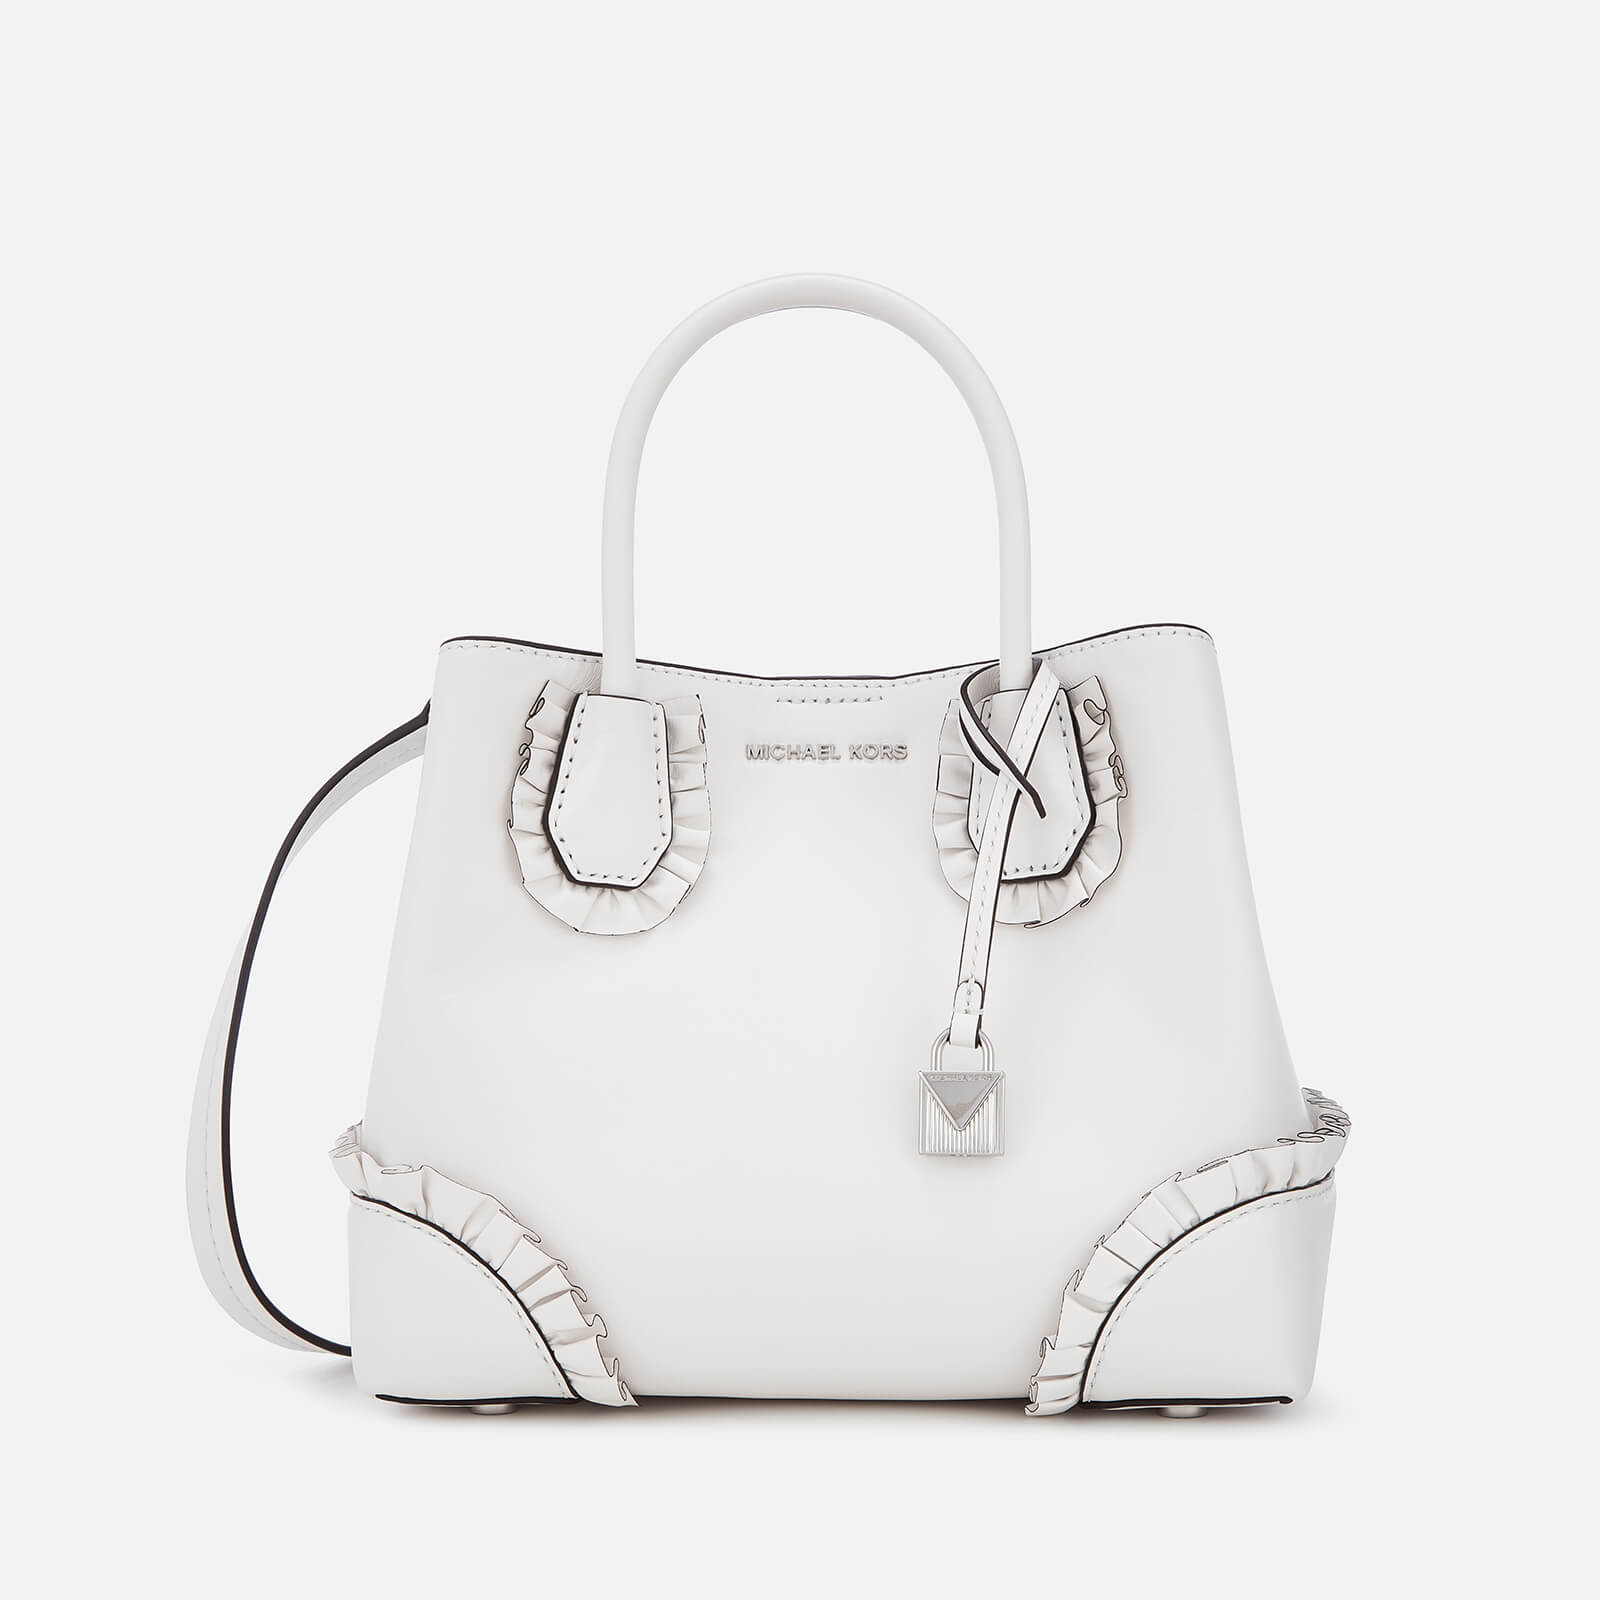 a0cab03102e4 MICHAEL MICHAEL KORS Women's Mercer Gallery Small Ruffle Satchel - Optic  White - Free UK Delivery over £50